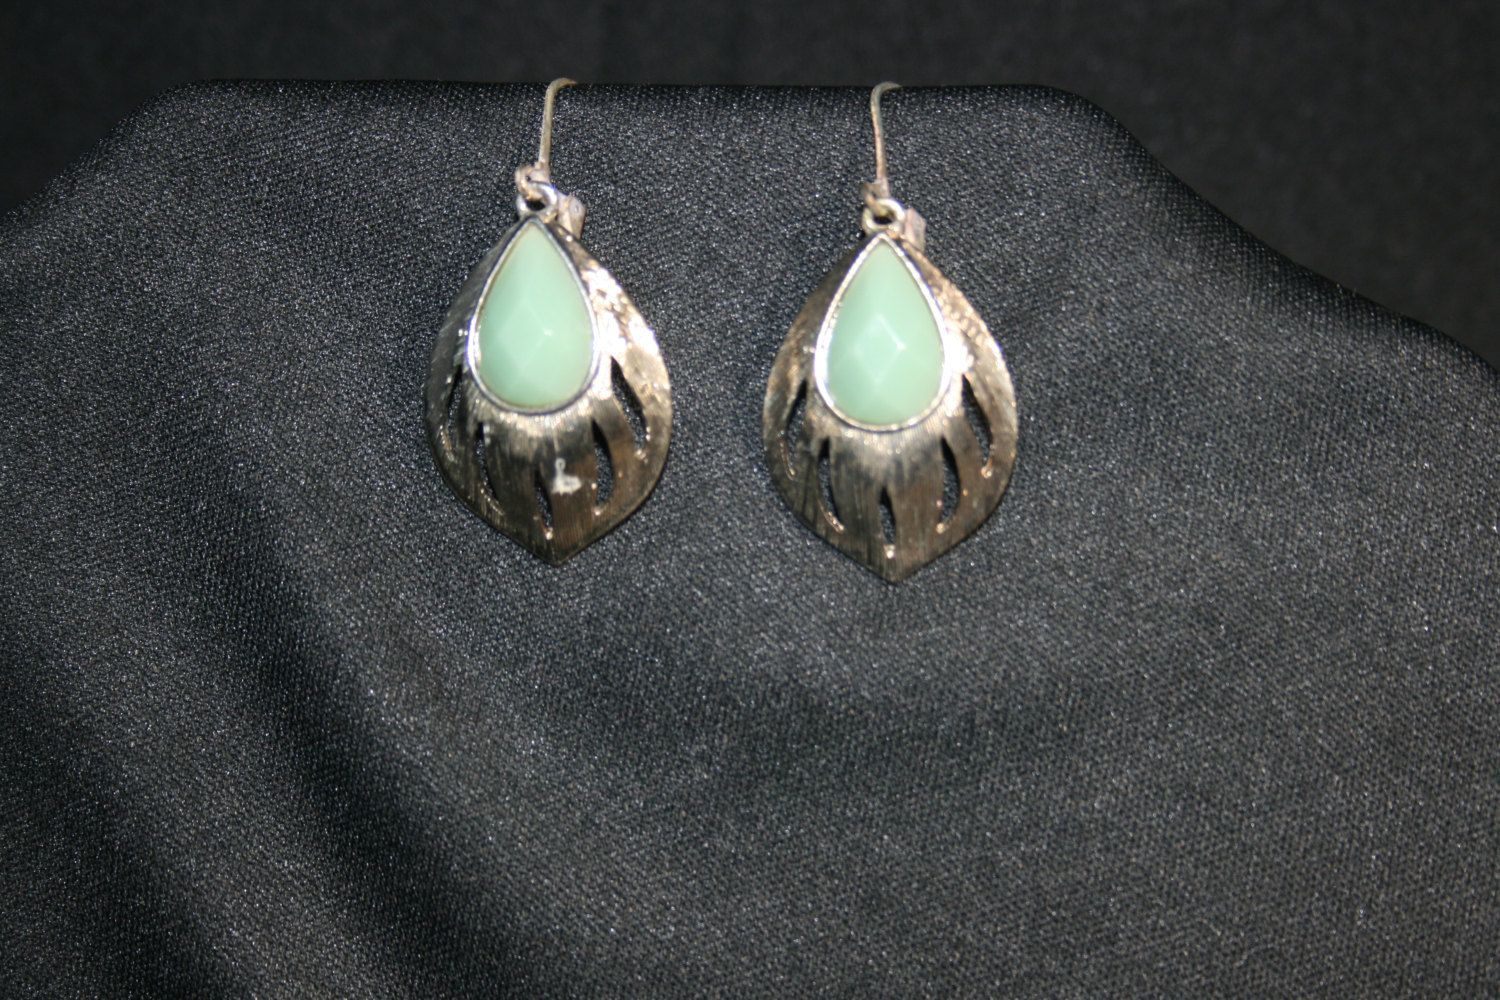 Vintage Silver Tone & Green Stone Drop Earrings Costume Jewelry by KattsCurioCabinet on Etsy